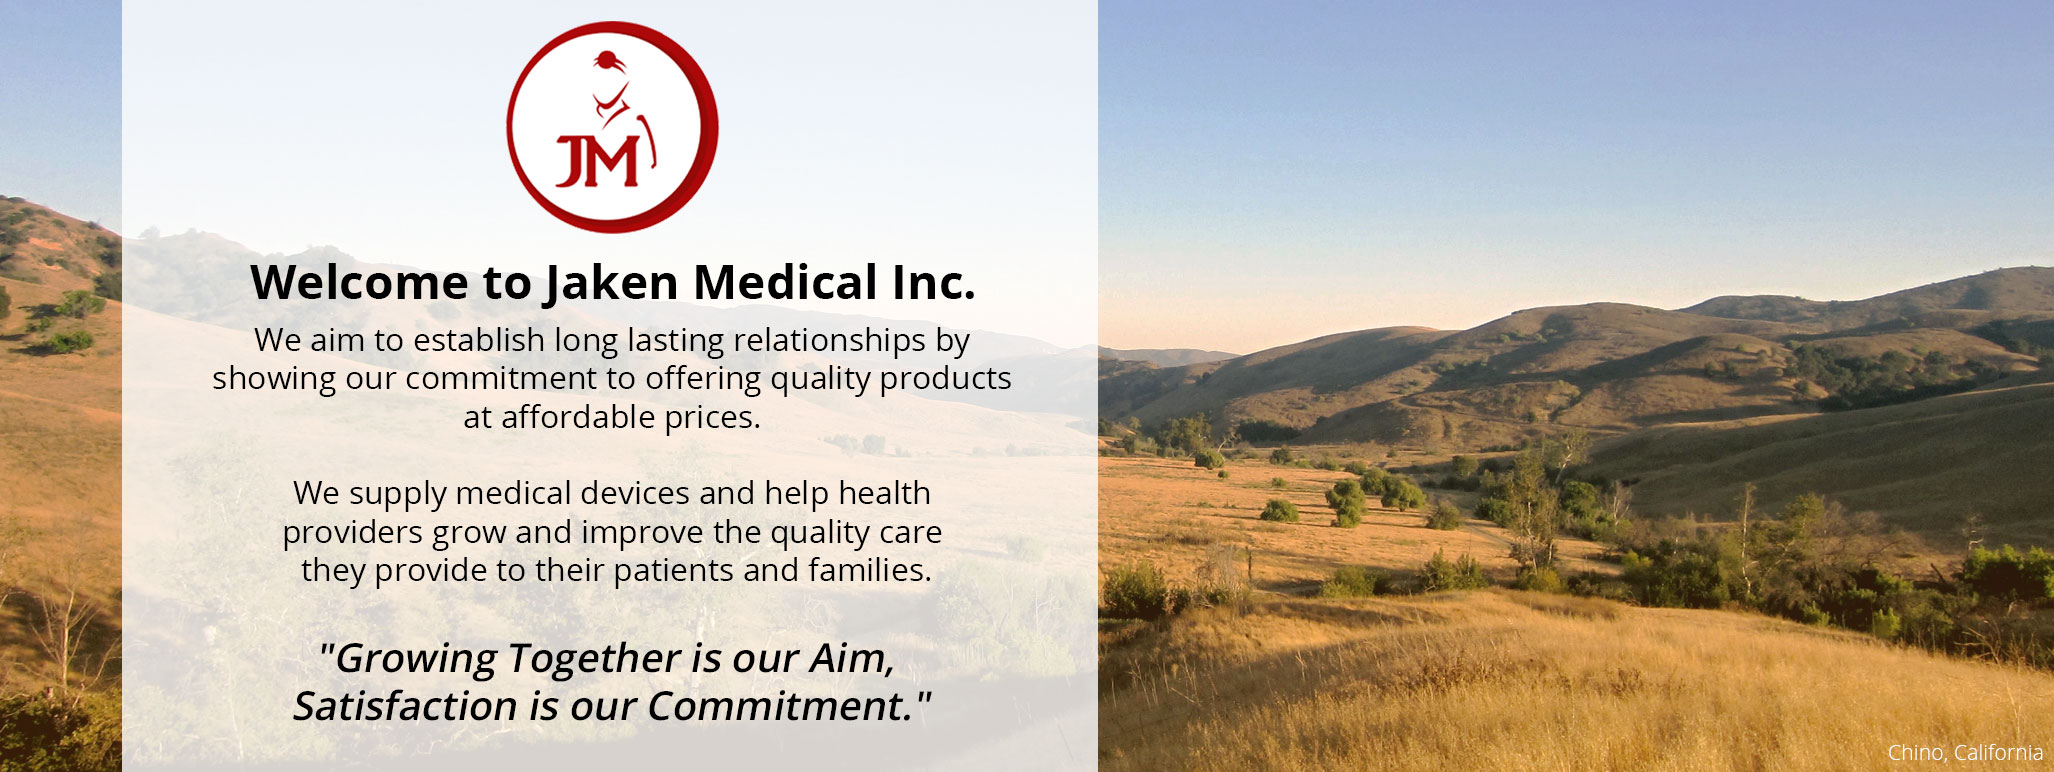 jaken medical about us image